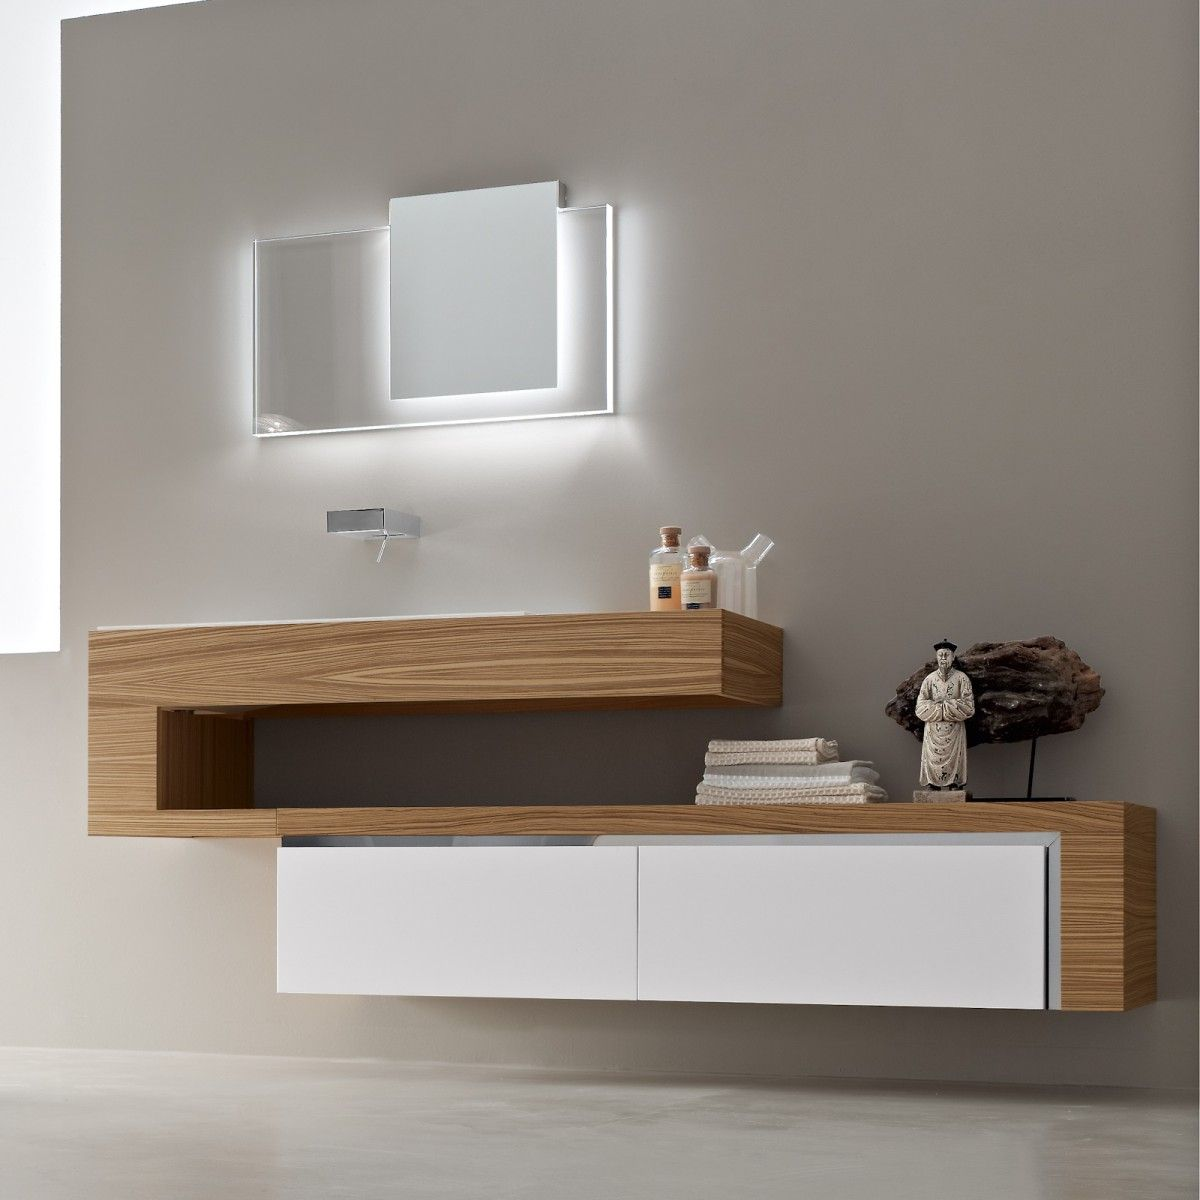 Bathroom Vanity Design Ideas inspiring bathroom vanity mirror ideas bathroom vanity ideas in girly yet simply bathroom ideas Ultra Modern Italian Bathroom Design With Nice Wall Mount Vanity With Cool Pattern And Chic Mirror Design Ideas Of Italian Vanity Design